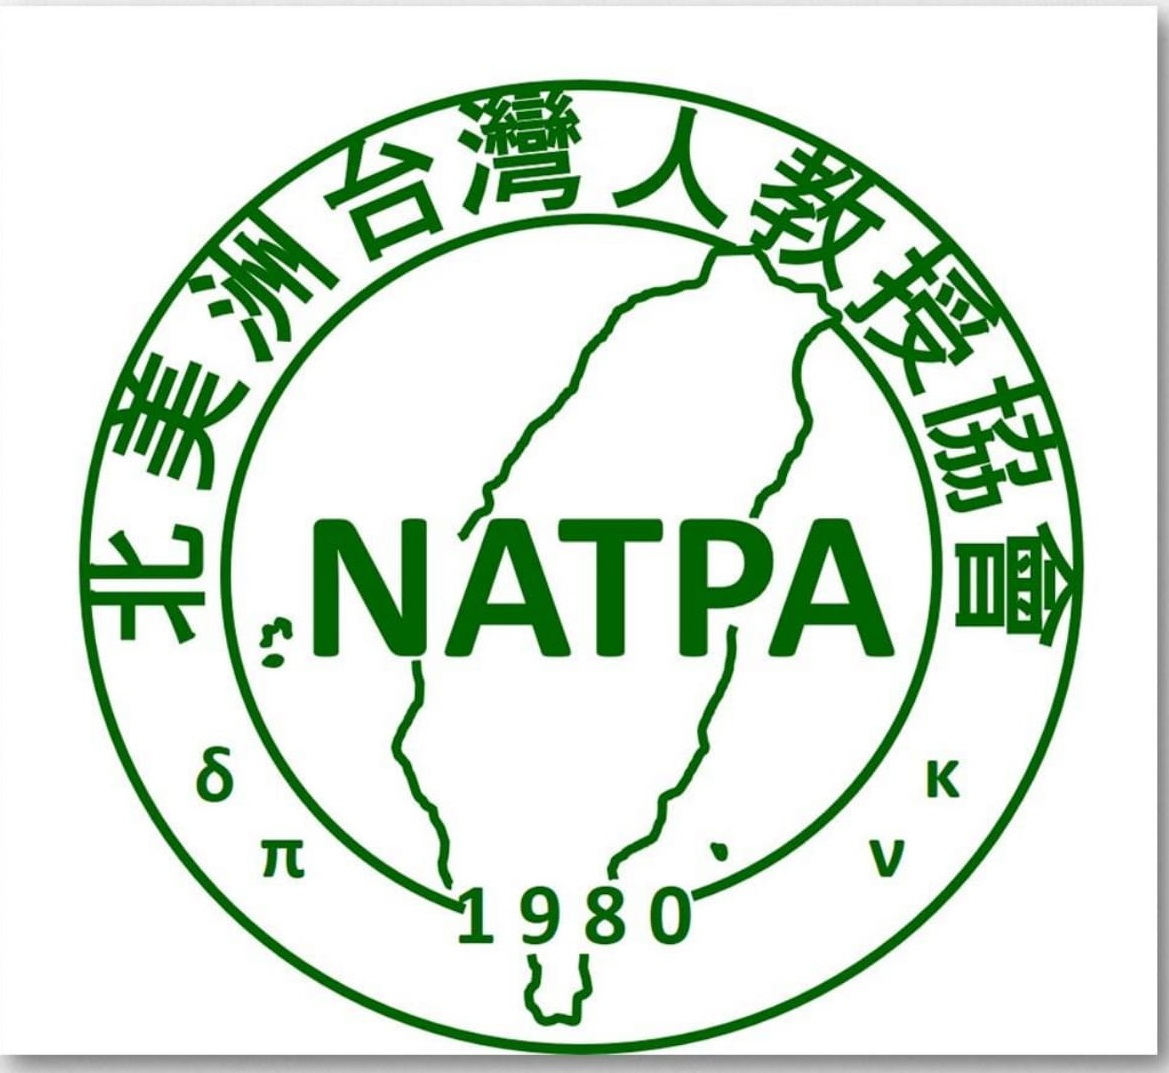 North America Taiwanese Professors' Association South California Chapter(NATPA S CAL) (北美洲台灣人教授協會南加州分會的活動)